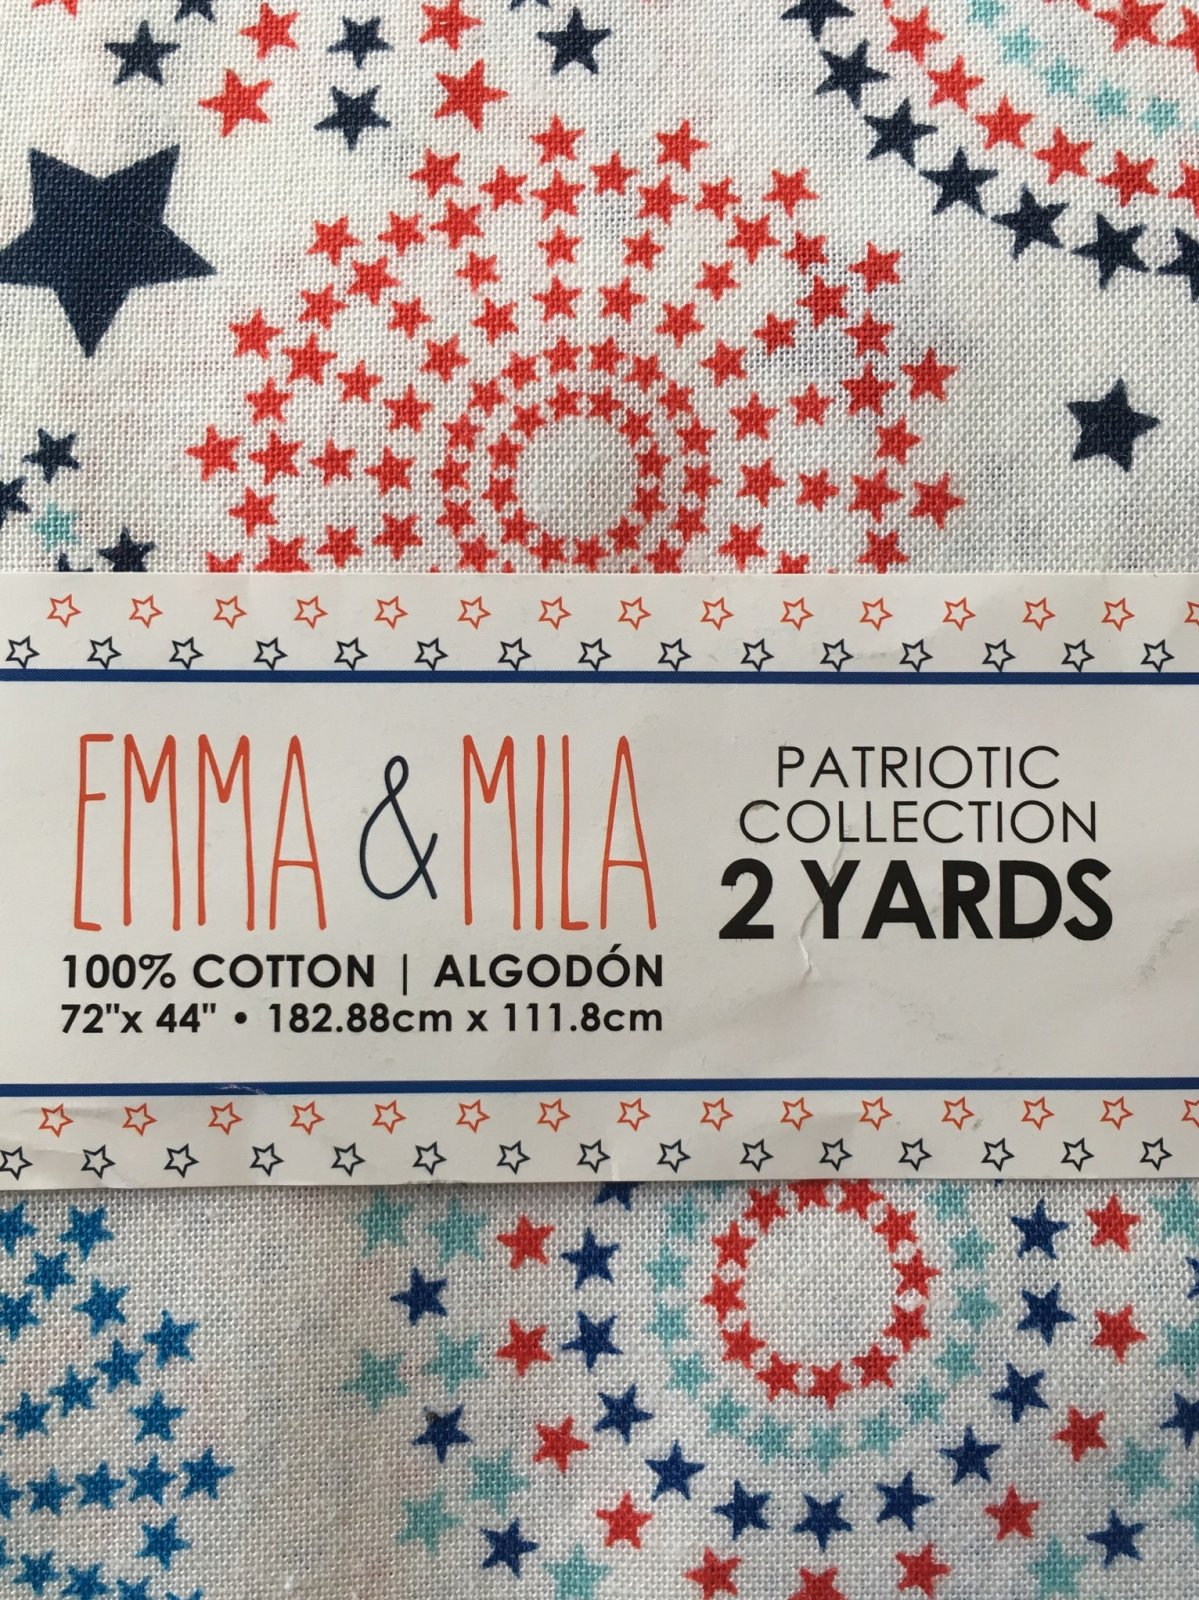 Patrotic Collection by E&M